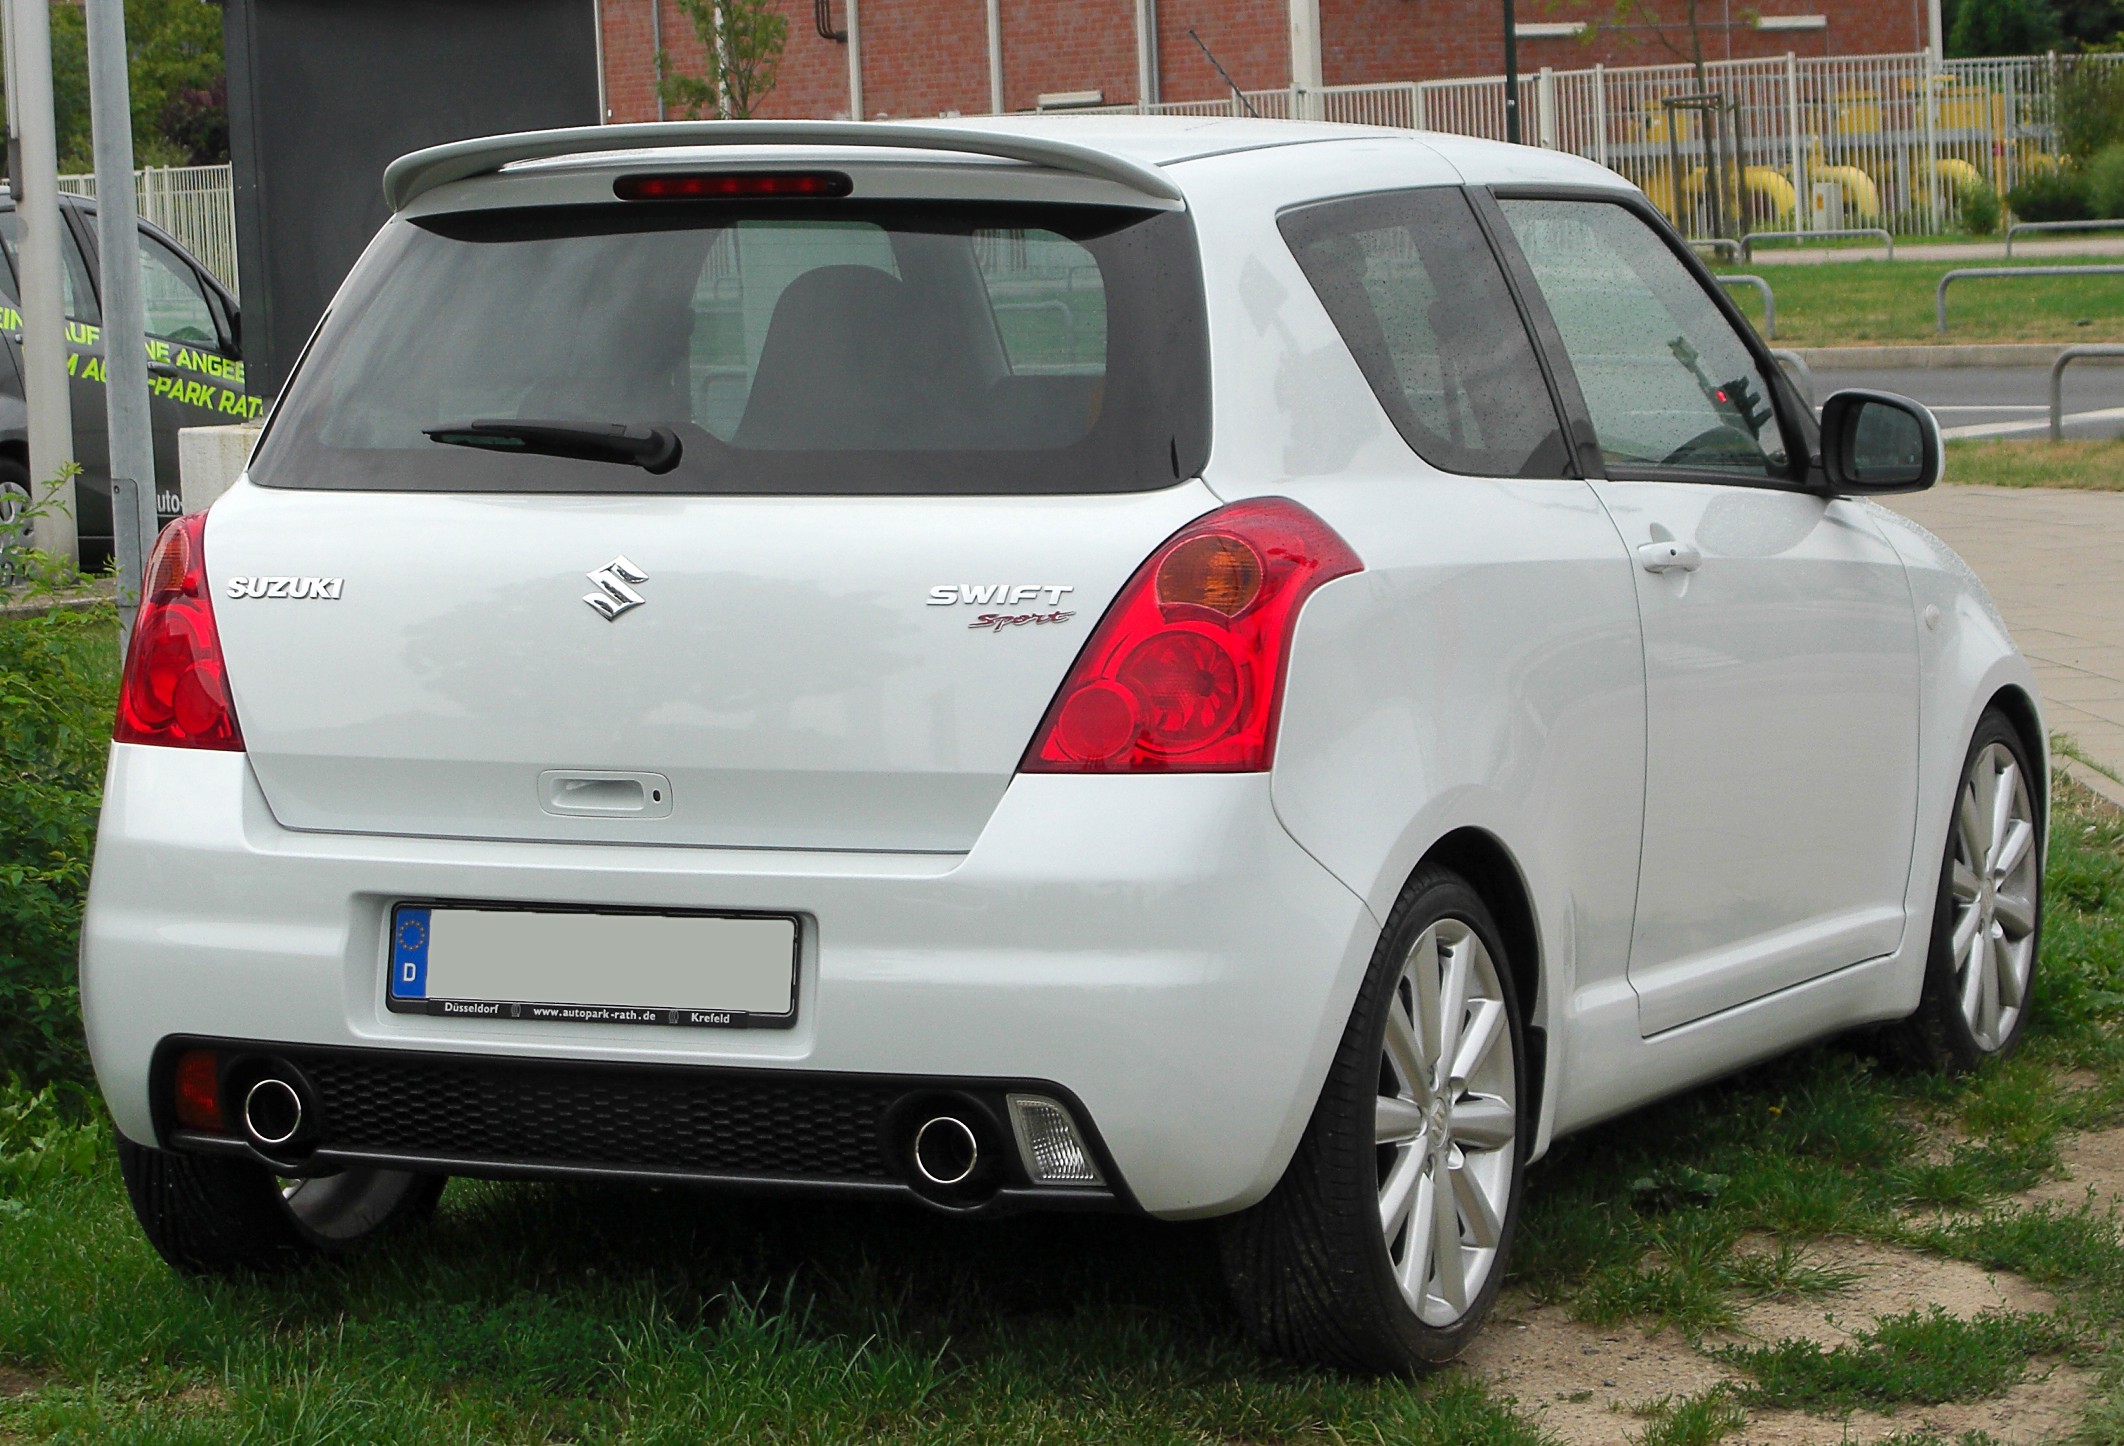 Suzuki Swift #1